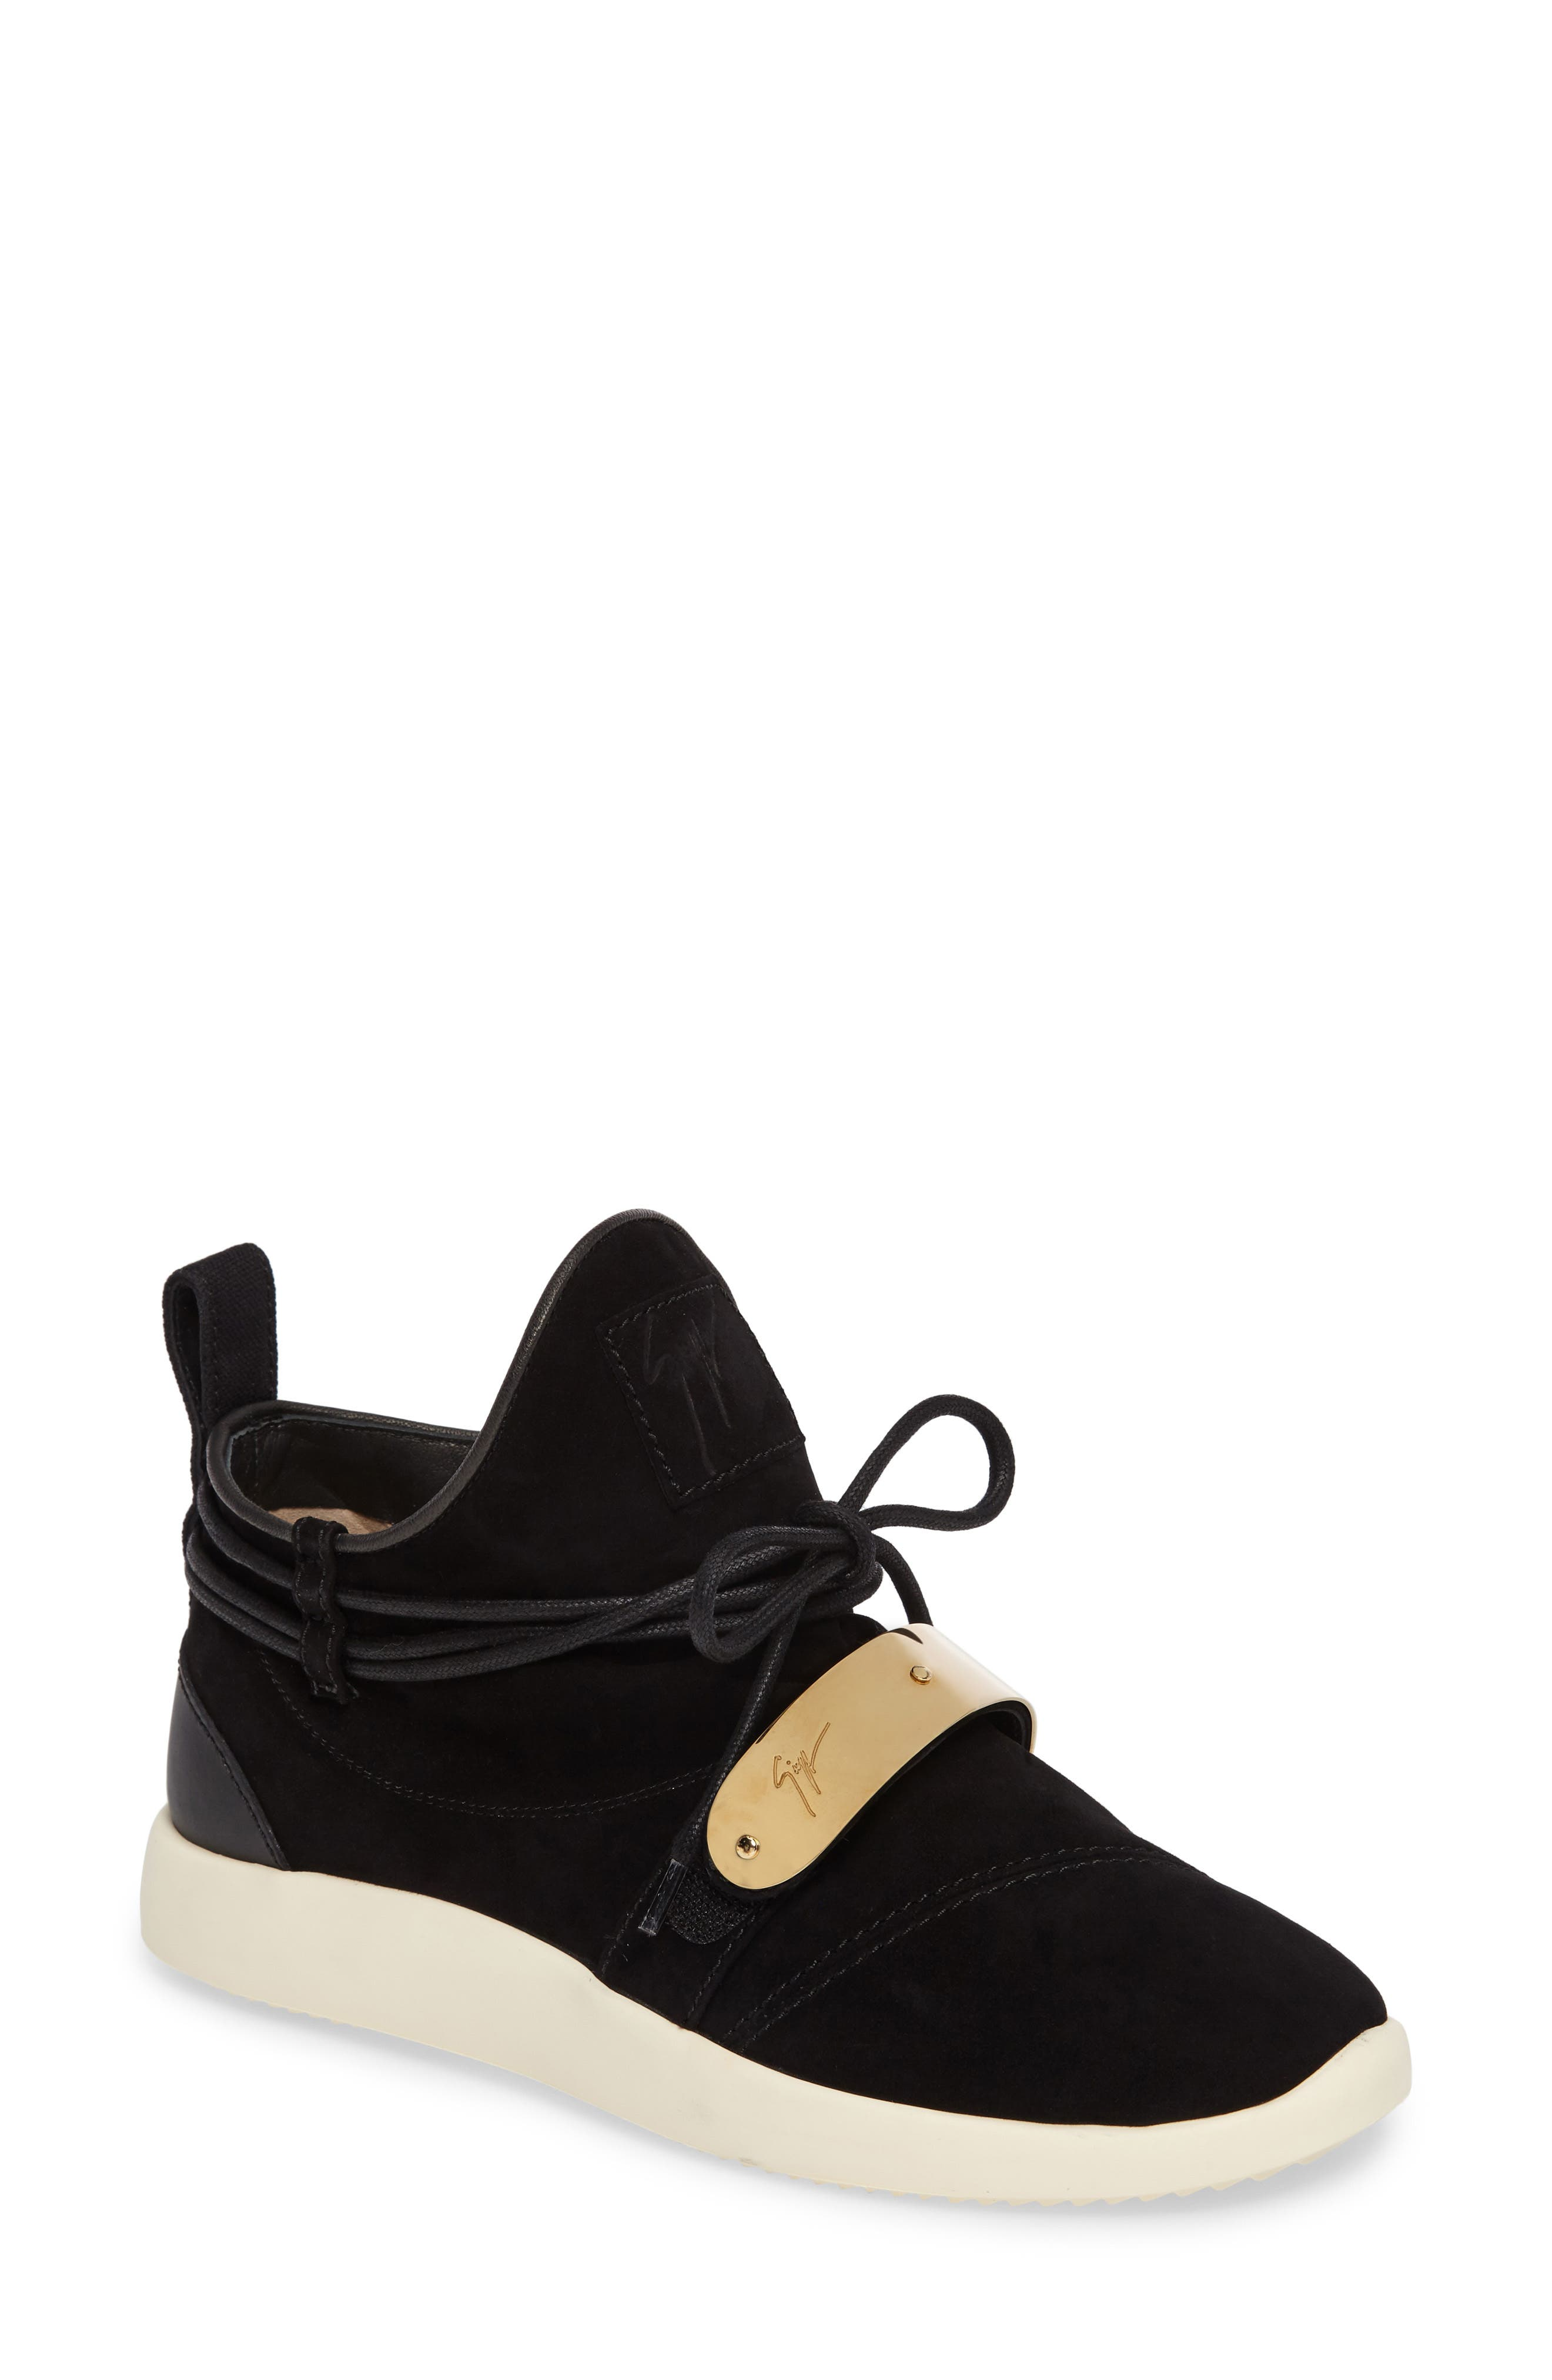 Gold Band Sneaker,                         Main,                         color, 001